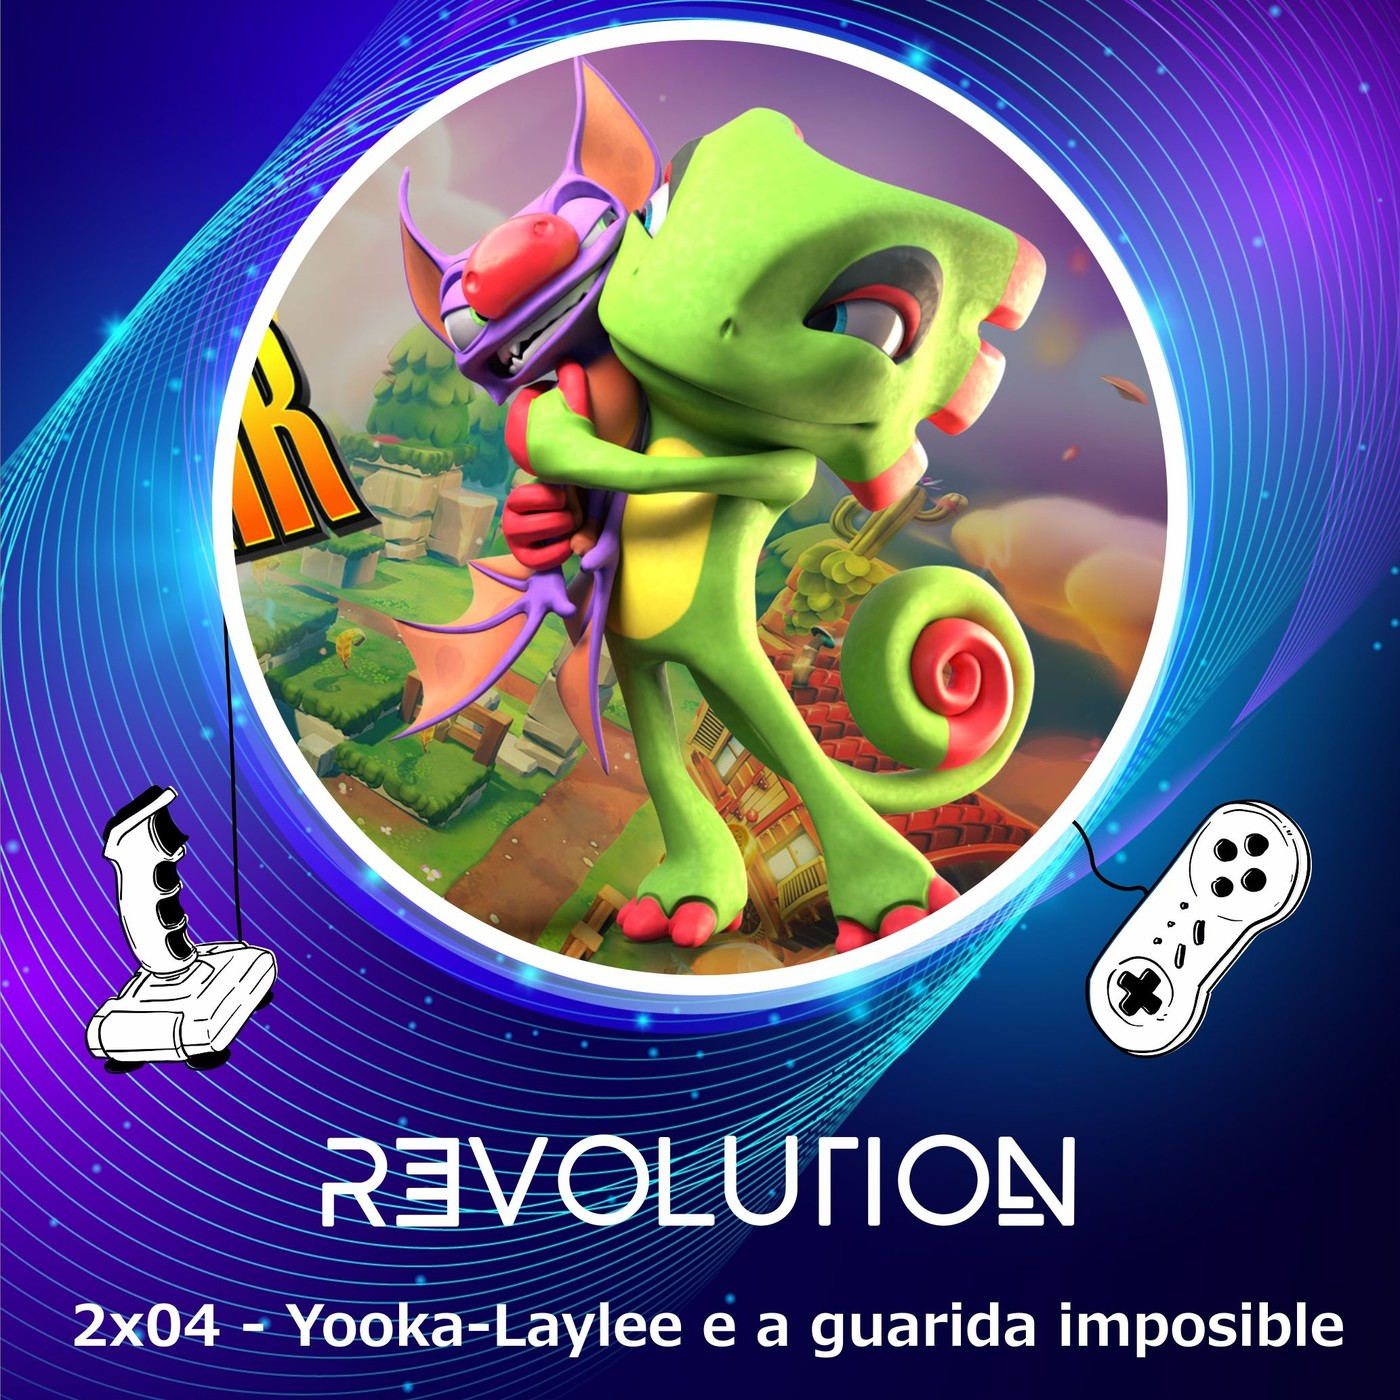 Revolution Podcast - 2x04 - Yooka-Laylee e a Guarida Imposible